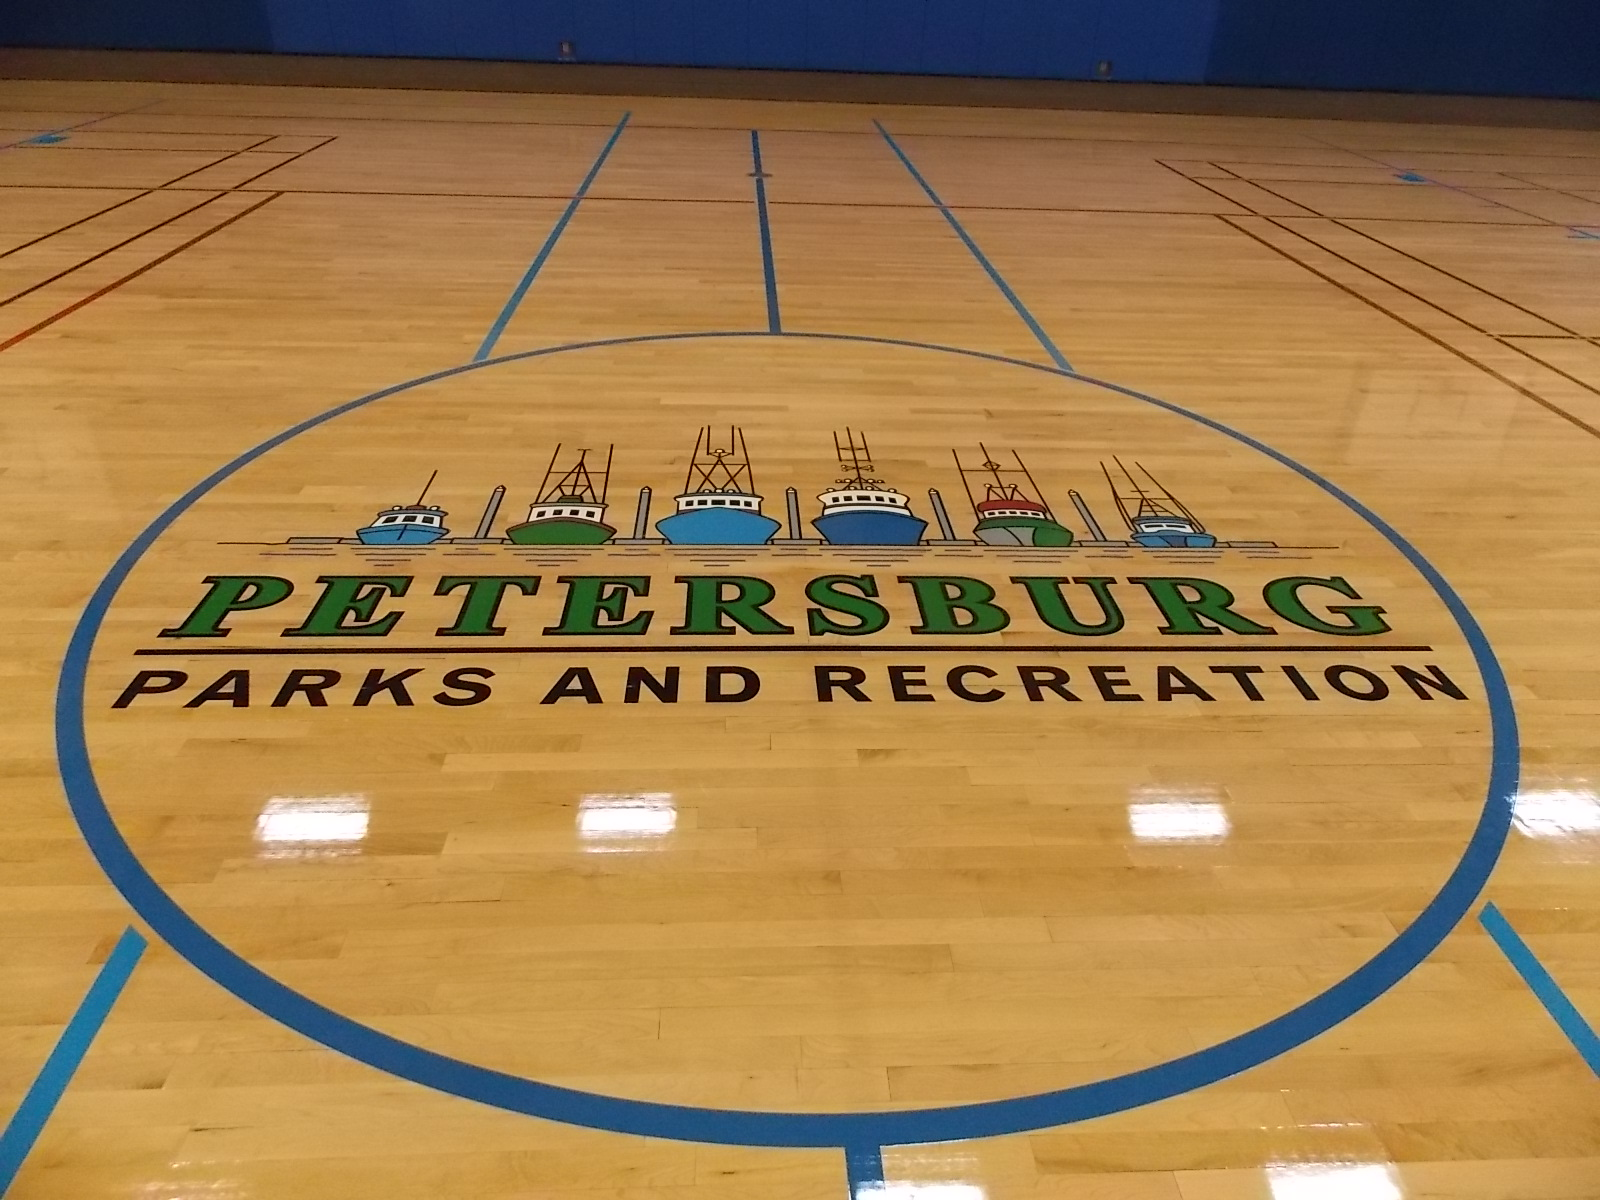 Petersburg borough holds off on changing age restriction at rec center